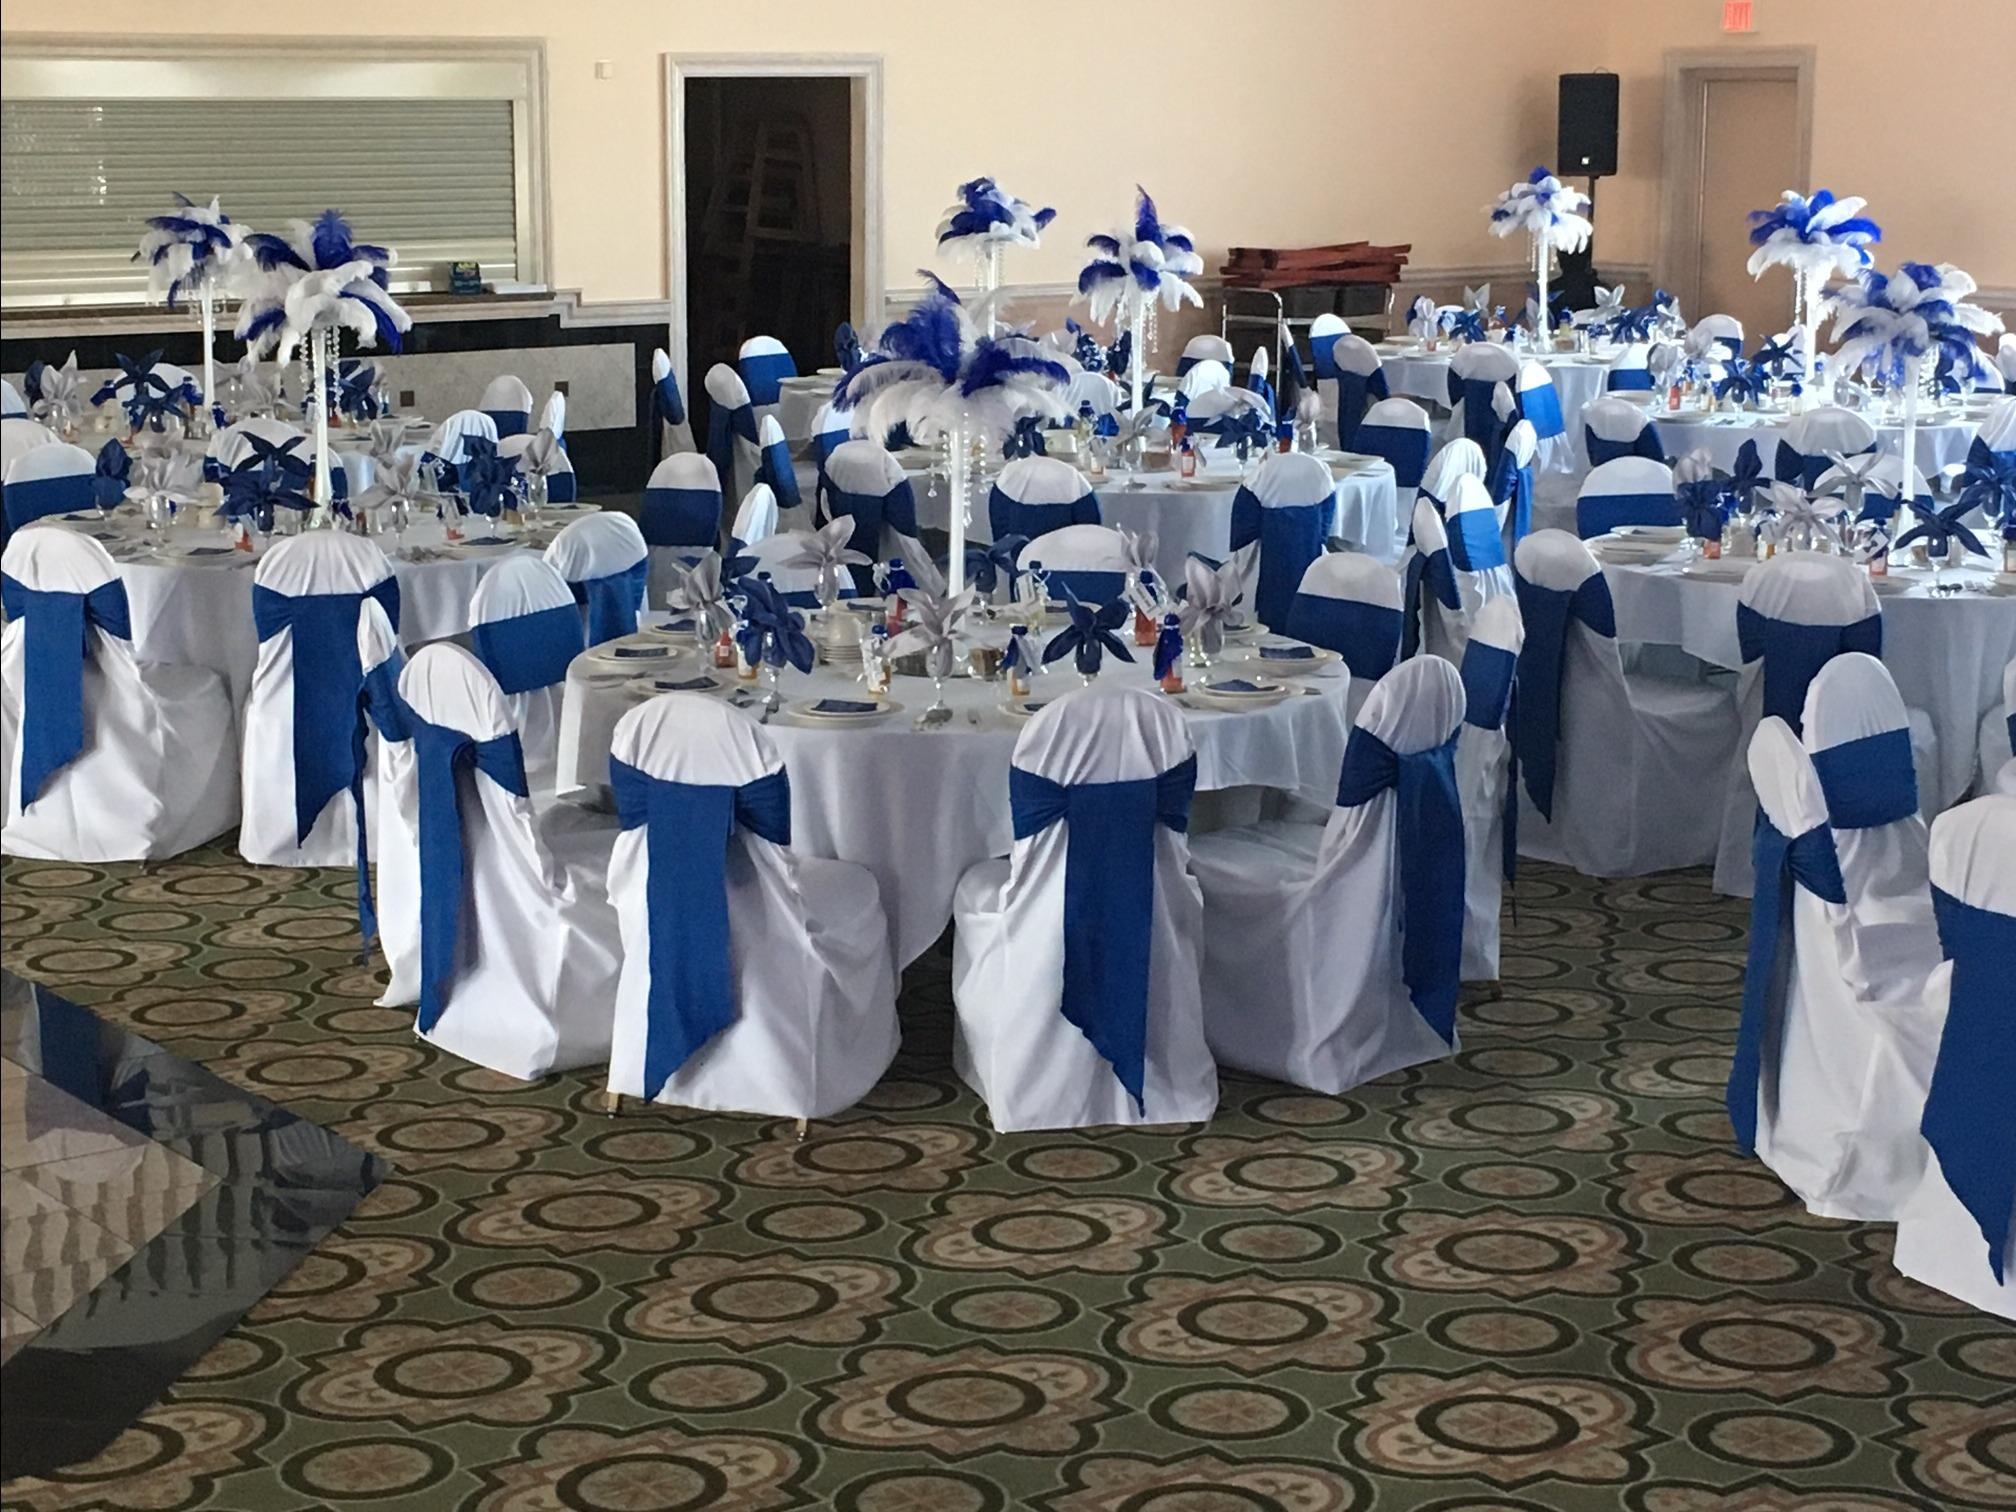 chair covers rental near me ozark trail folding party linens llc coupons in chicago 8coupons